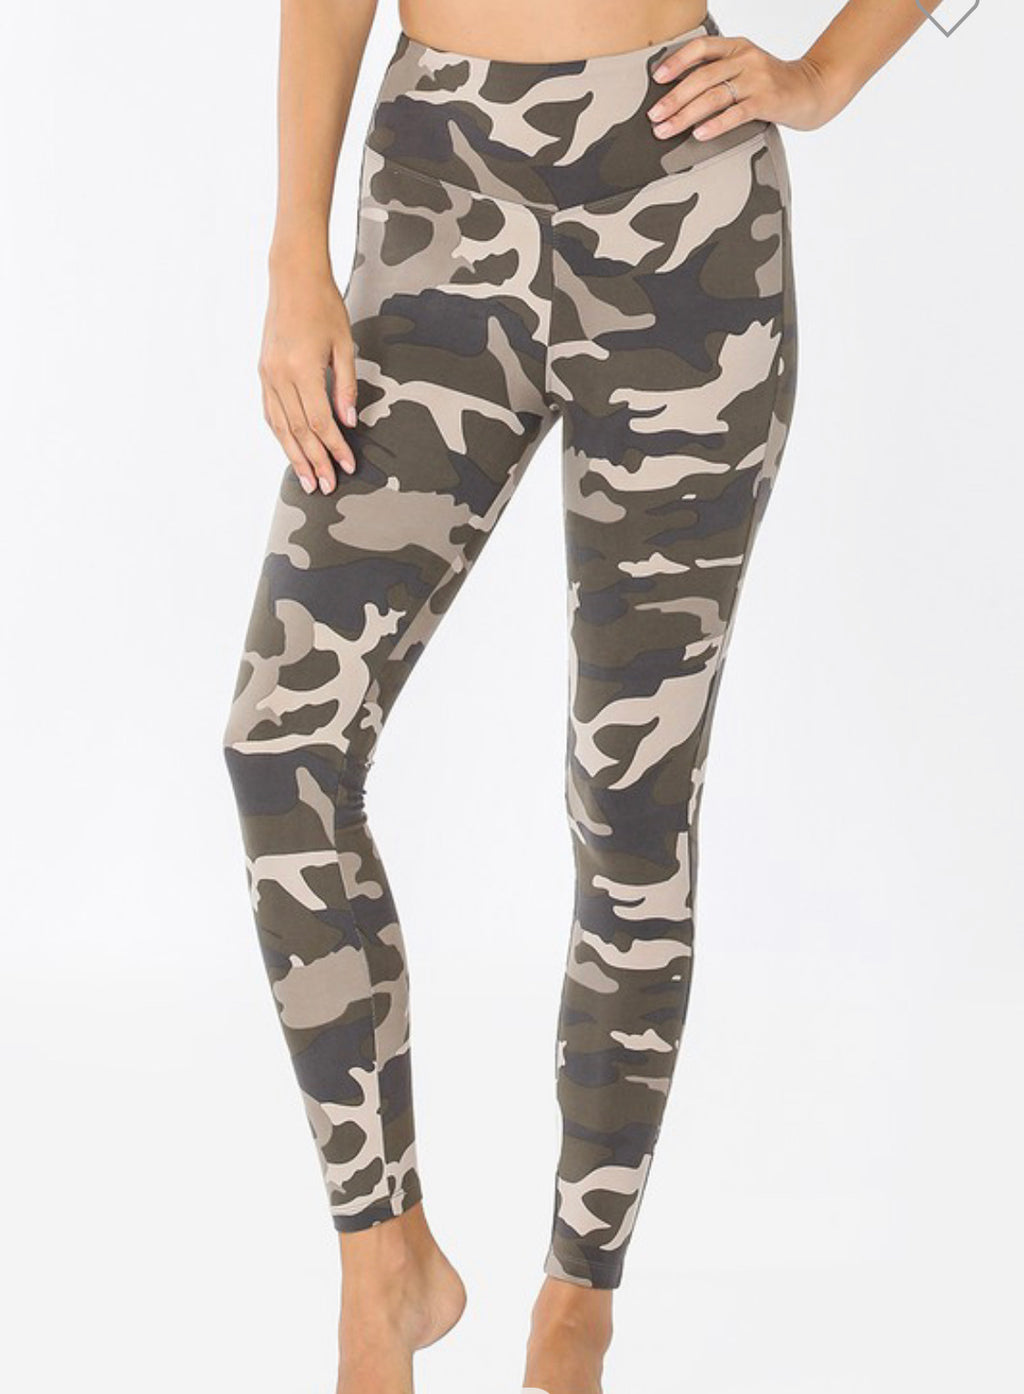 Dusty Camouflage Leggings